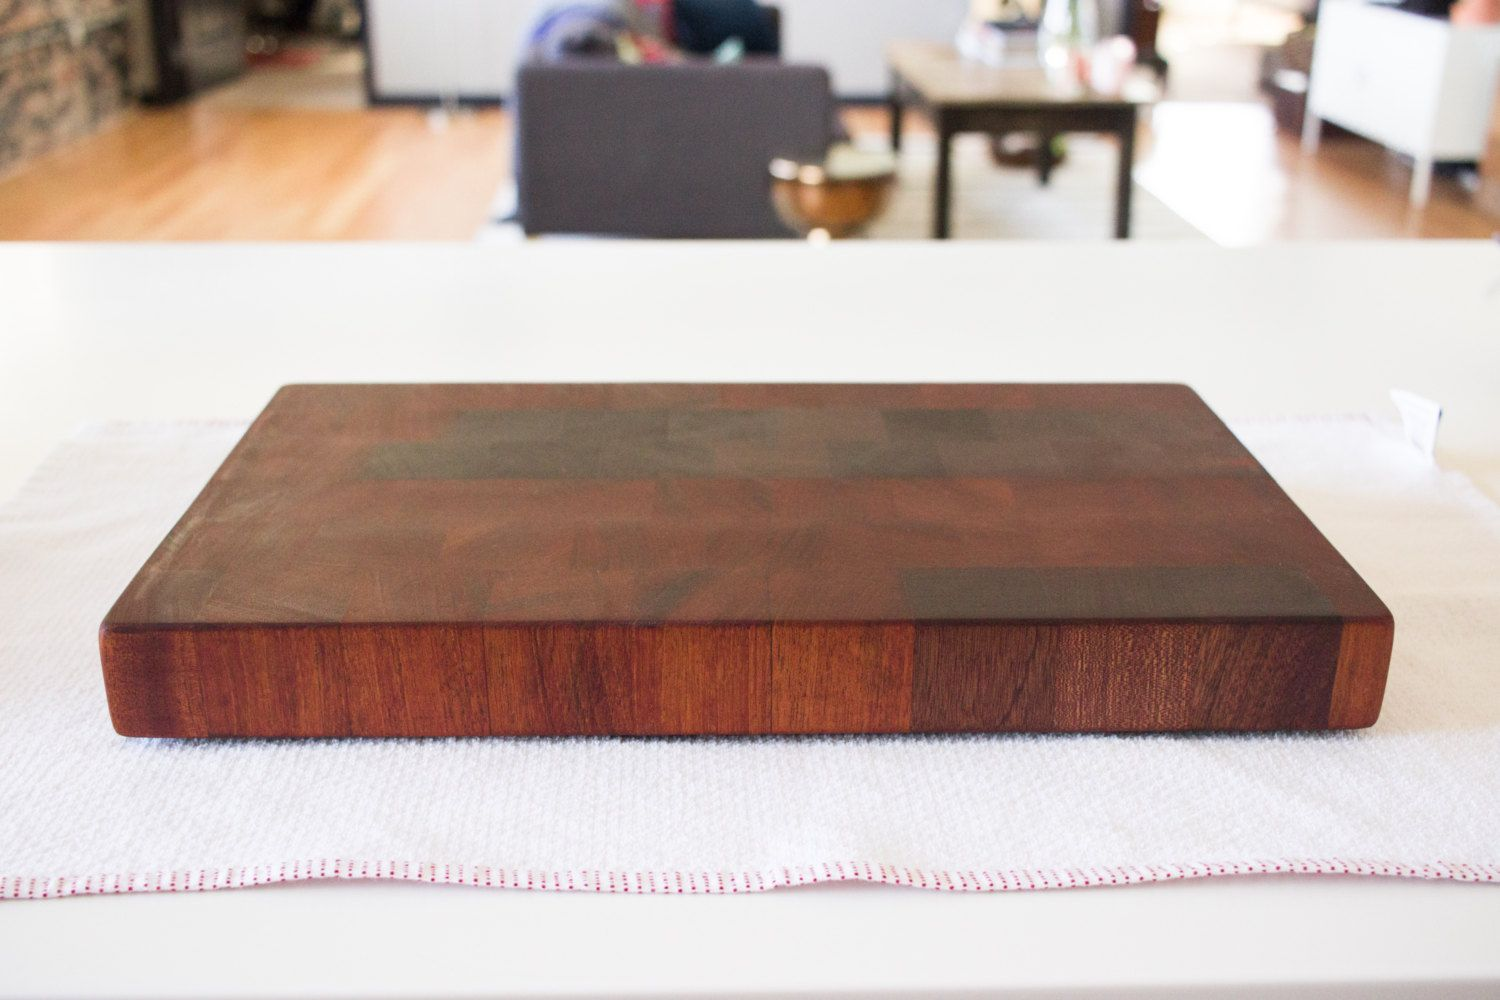 Absorbing Chefs 2018 Gifts Gifts Custom Made Mahogany End Grain Cutting Board Gifts Chefs Who Have Everything Uk Chefs Gifts Forhim Buy A Hand Crafted Mahogany End Grain Cutting Board Gifts nice food Gifts For Chefs